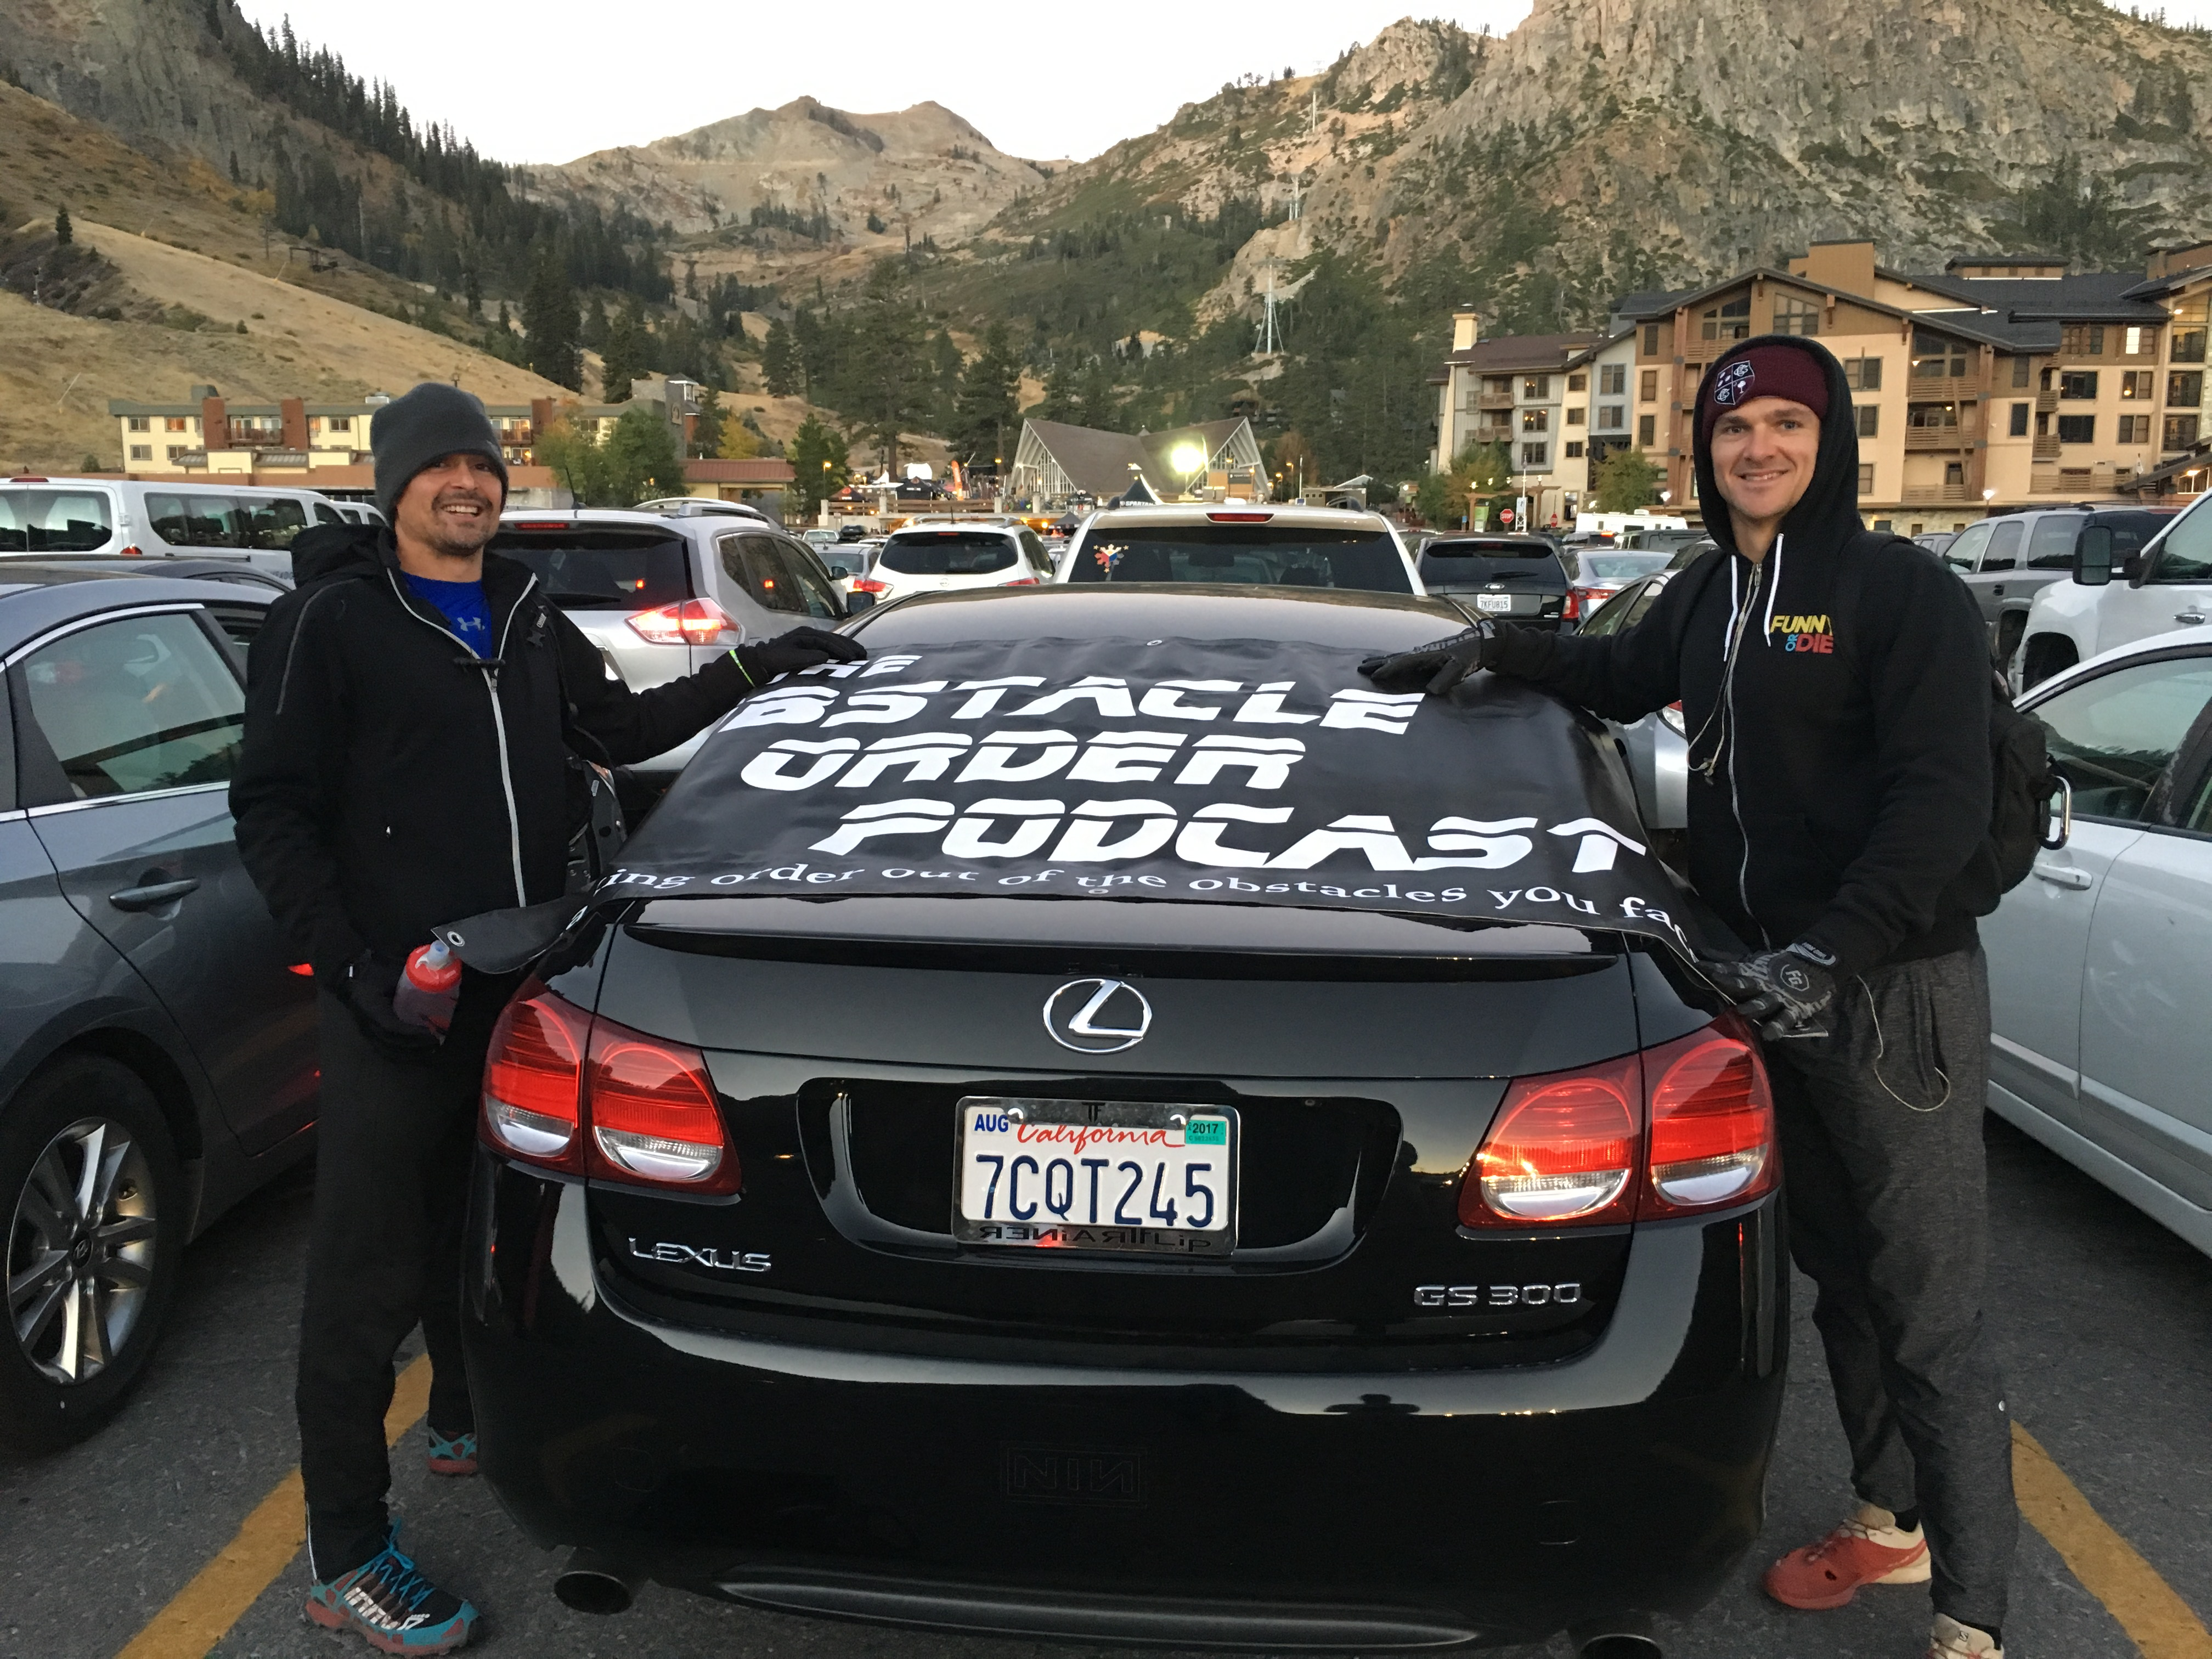 Episode 80: Interview with The Obstacle Order Podcast Hosts Phil Levi and Elijah Markstrom. We talk Spartan Worlds, Mandatory Obstacle Completion, Strategy, and More